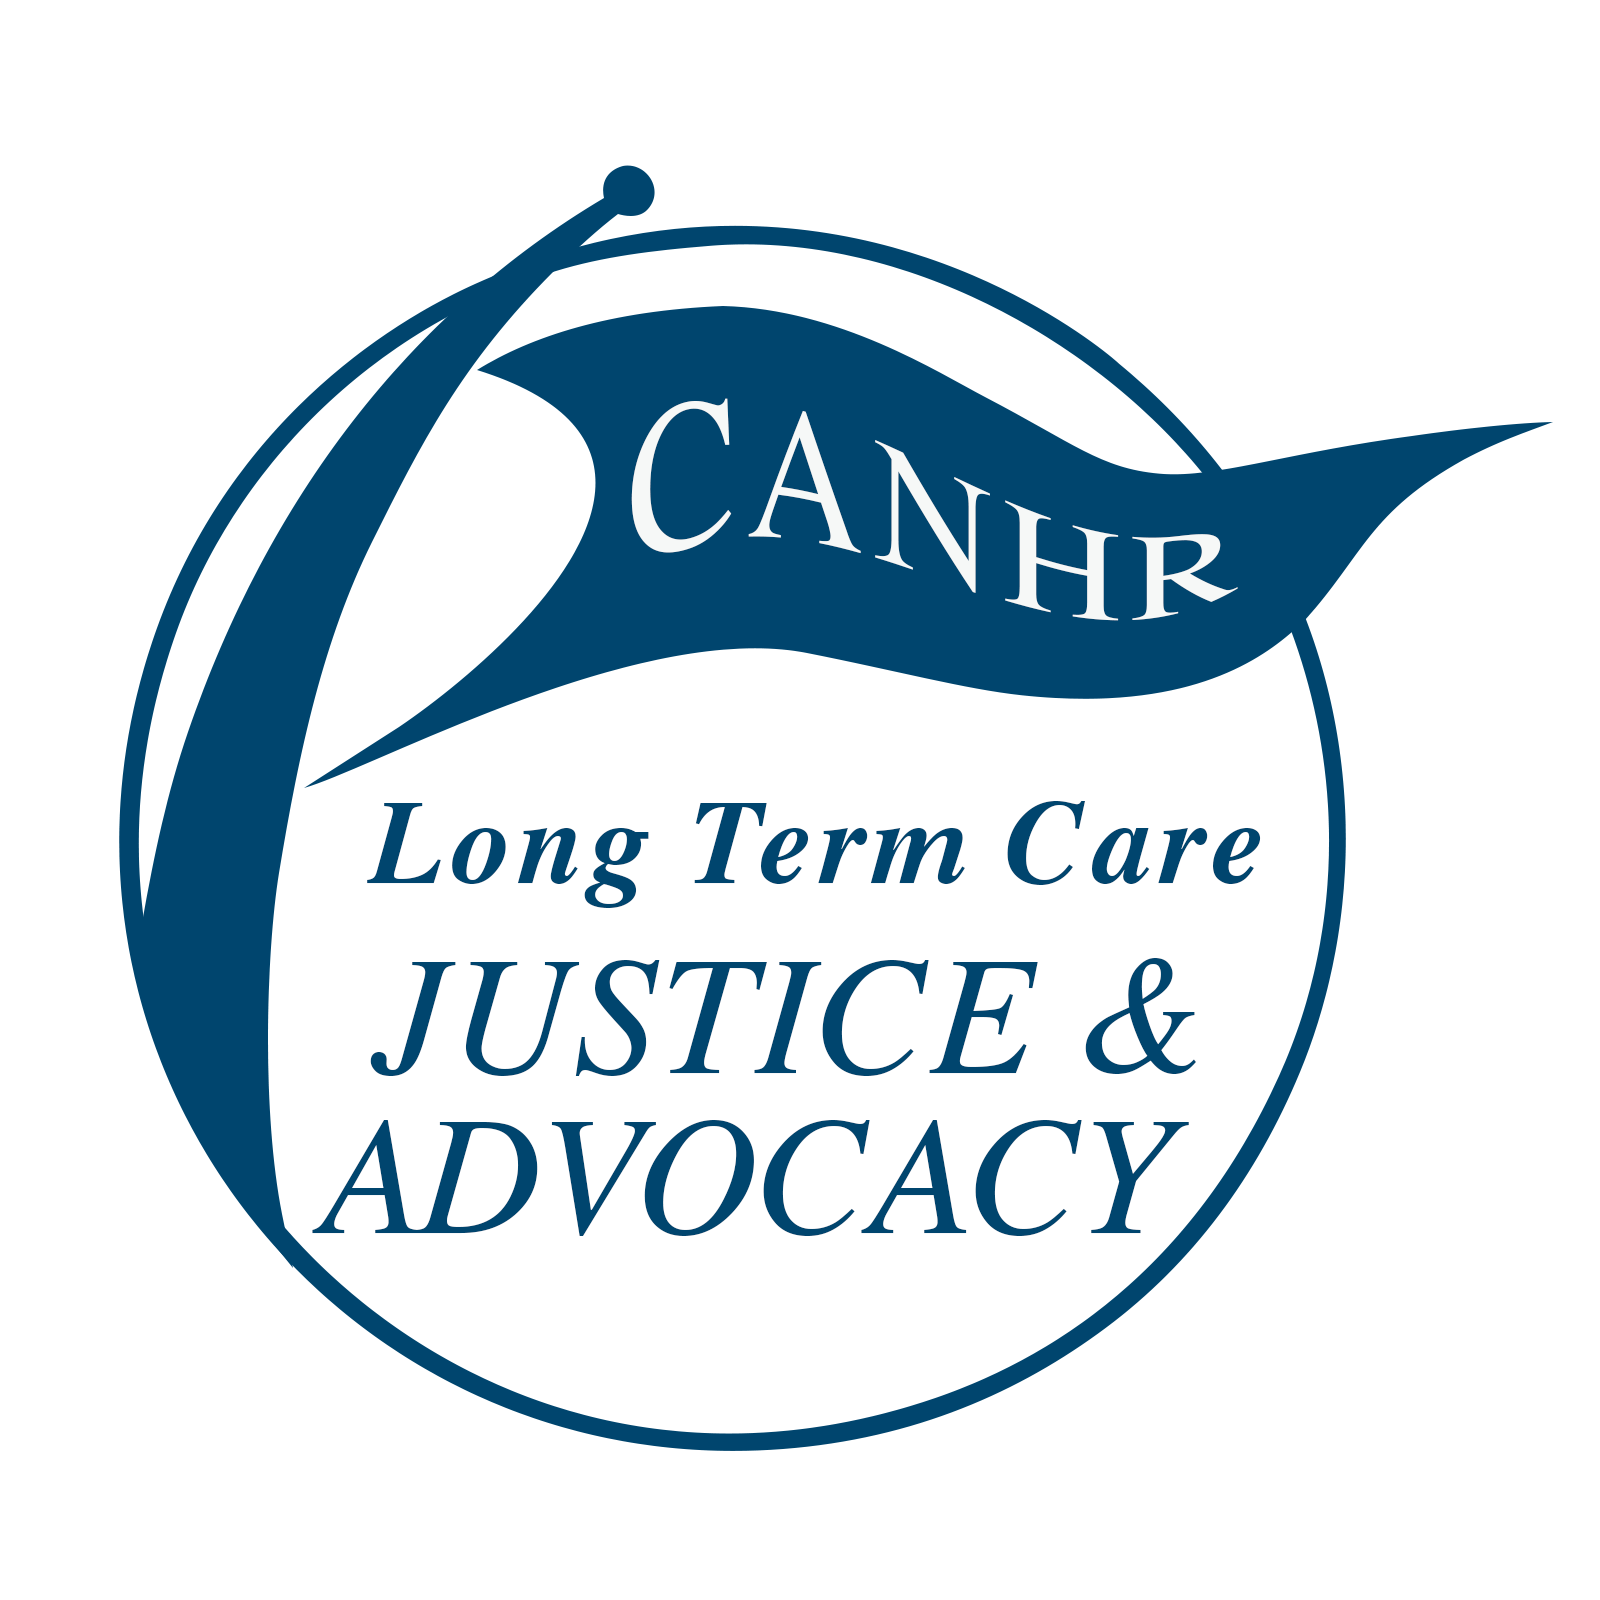 CANHRs Legal Information Network